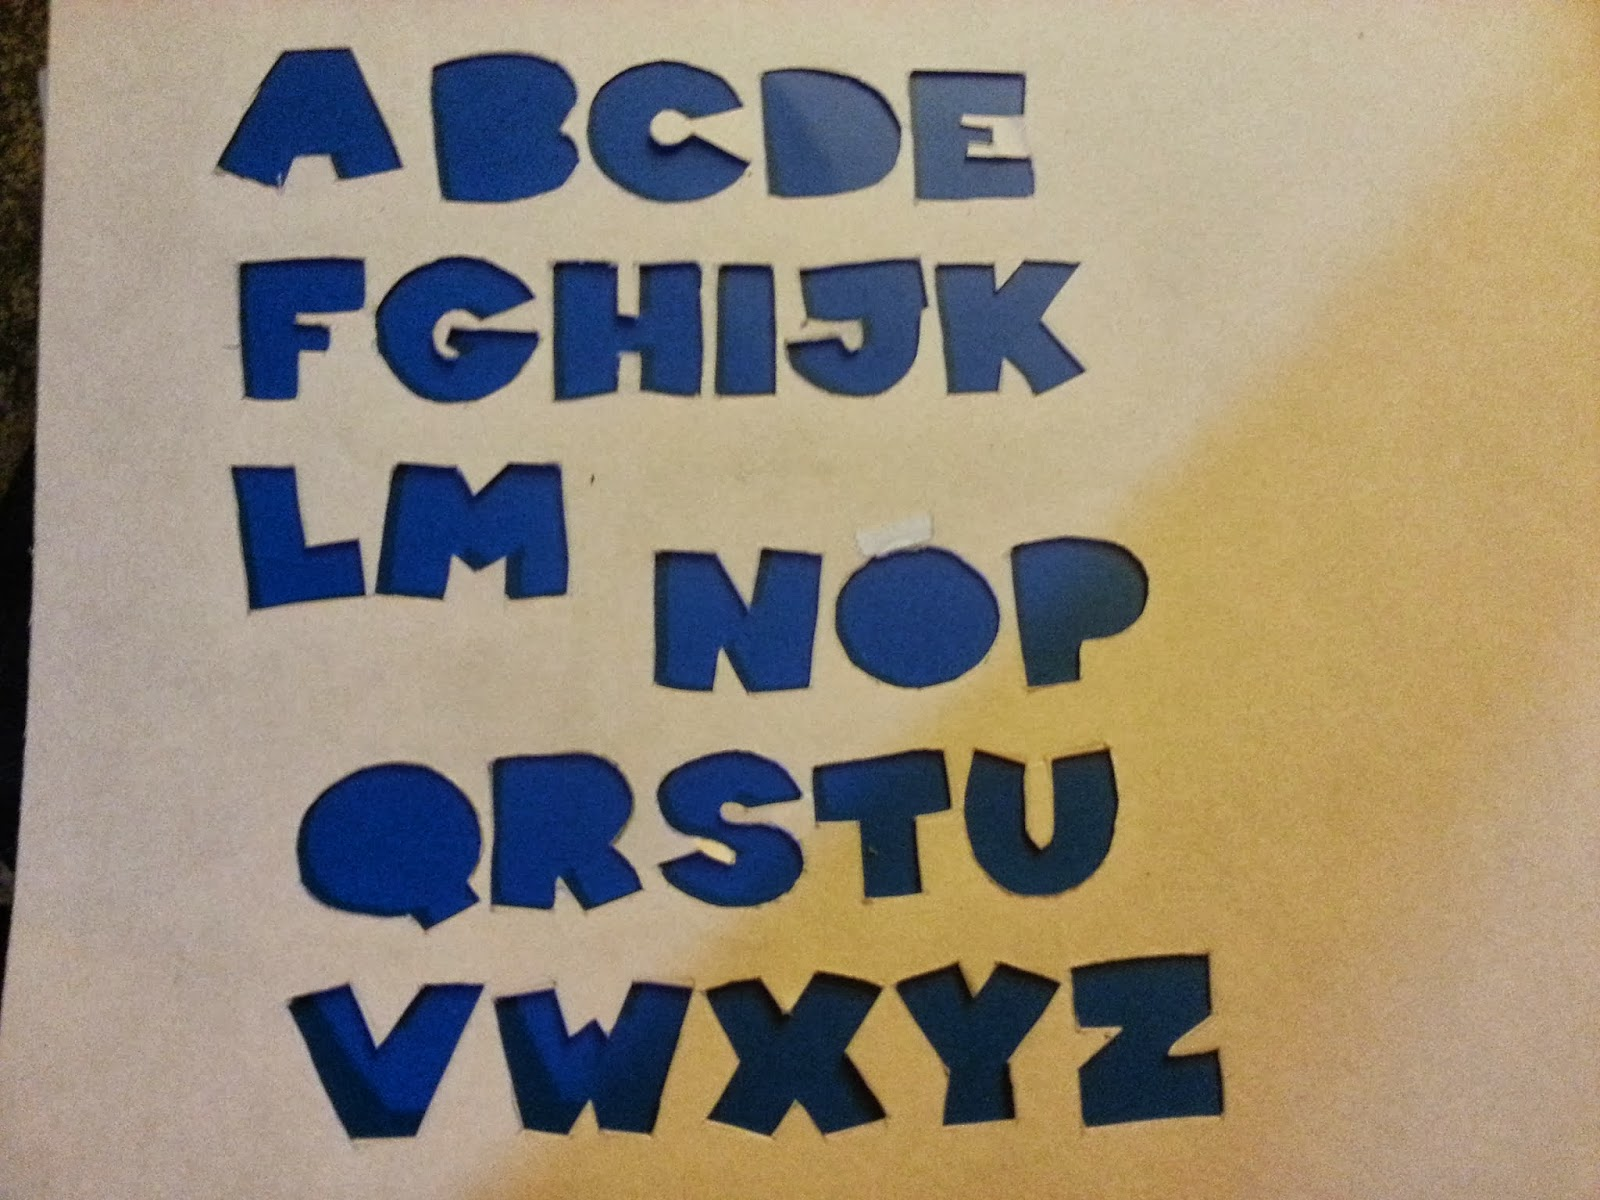 when you are all finished you can flip over the construction paper and there you will have a nice letter stencil